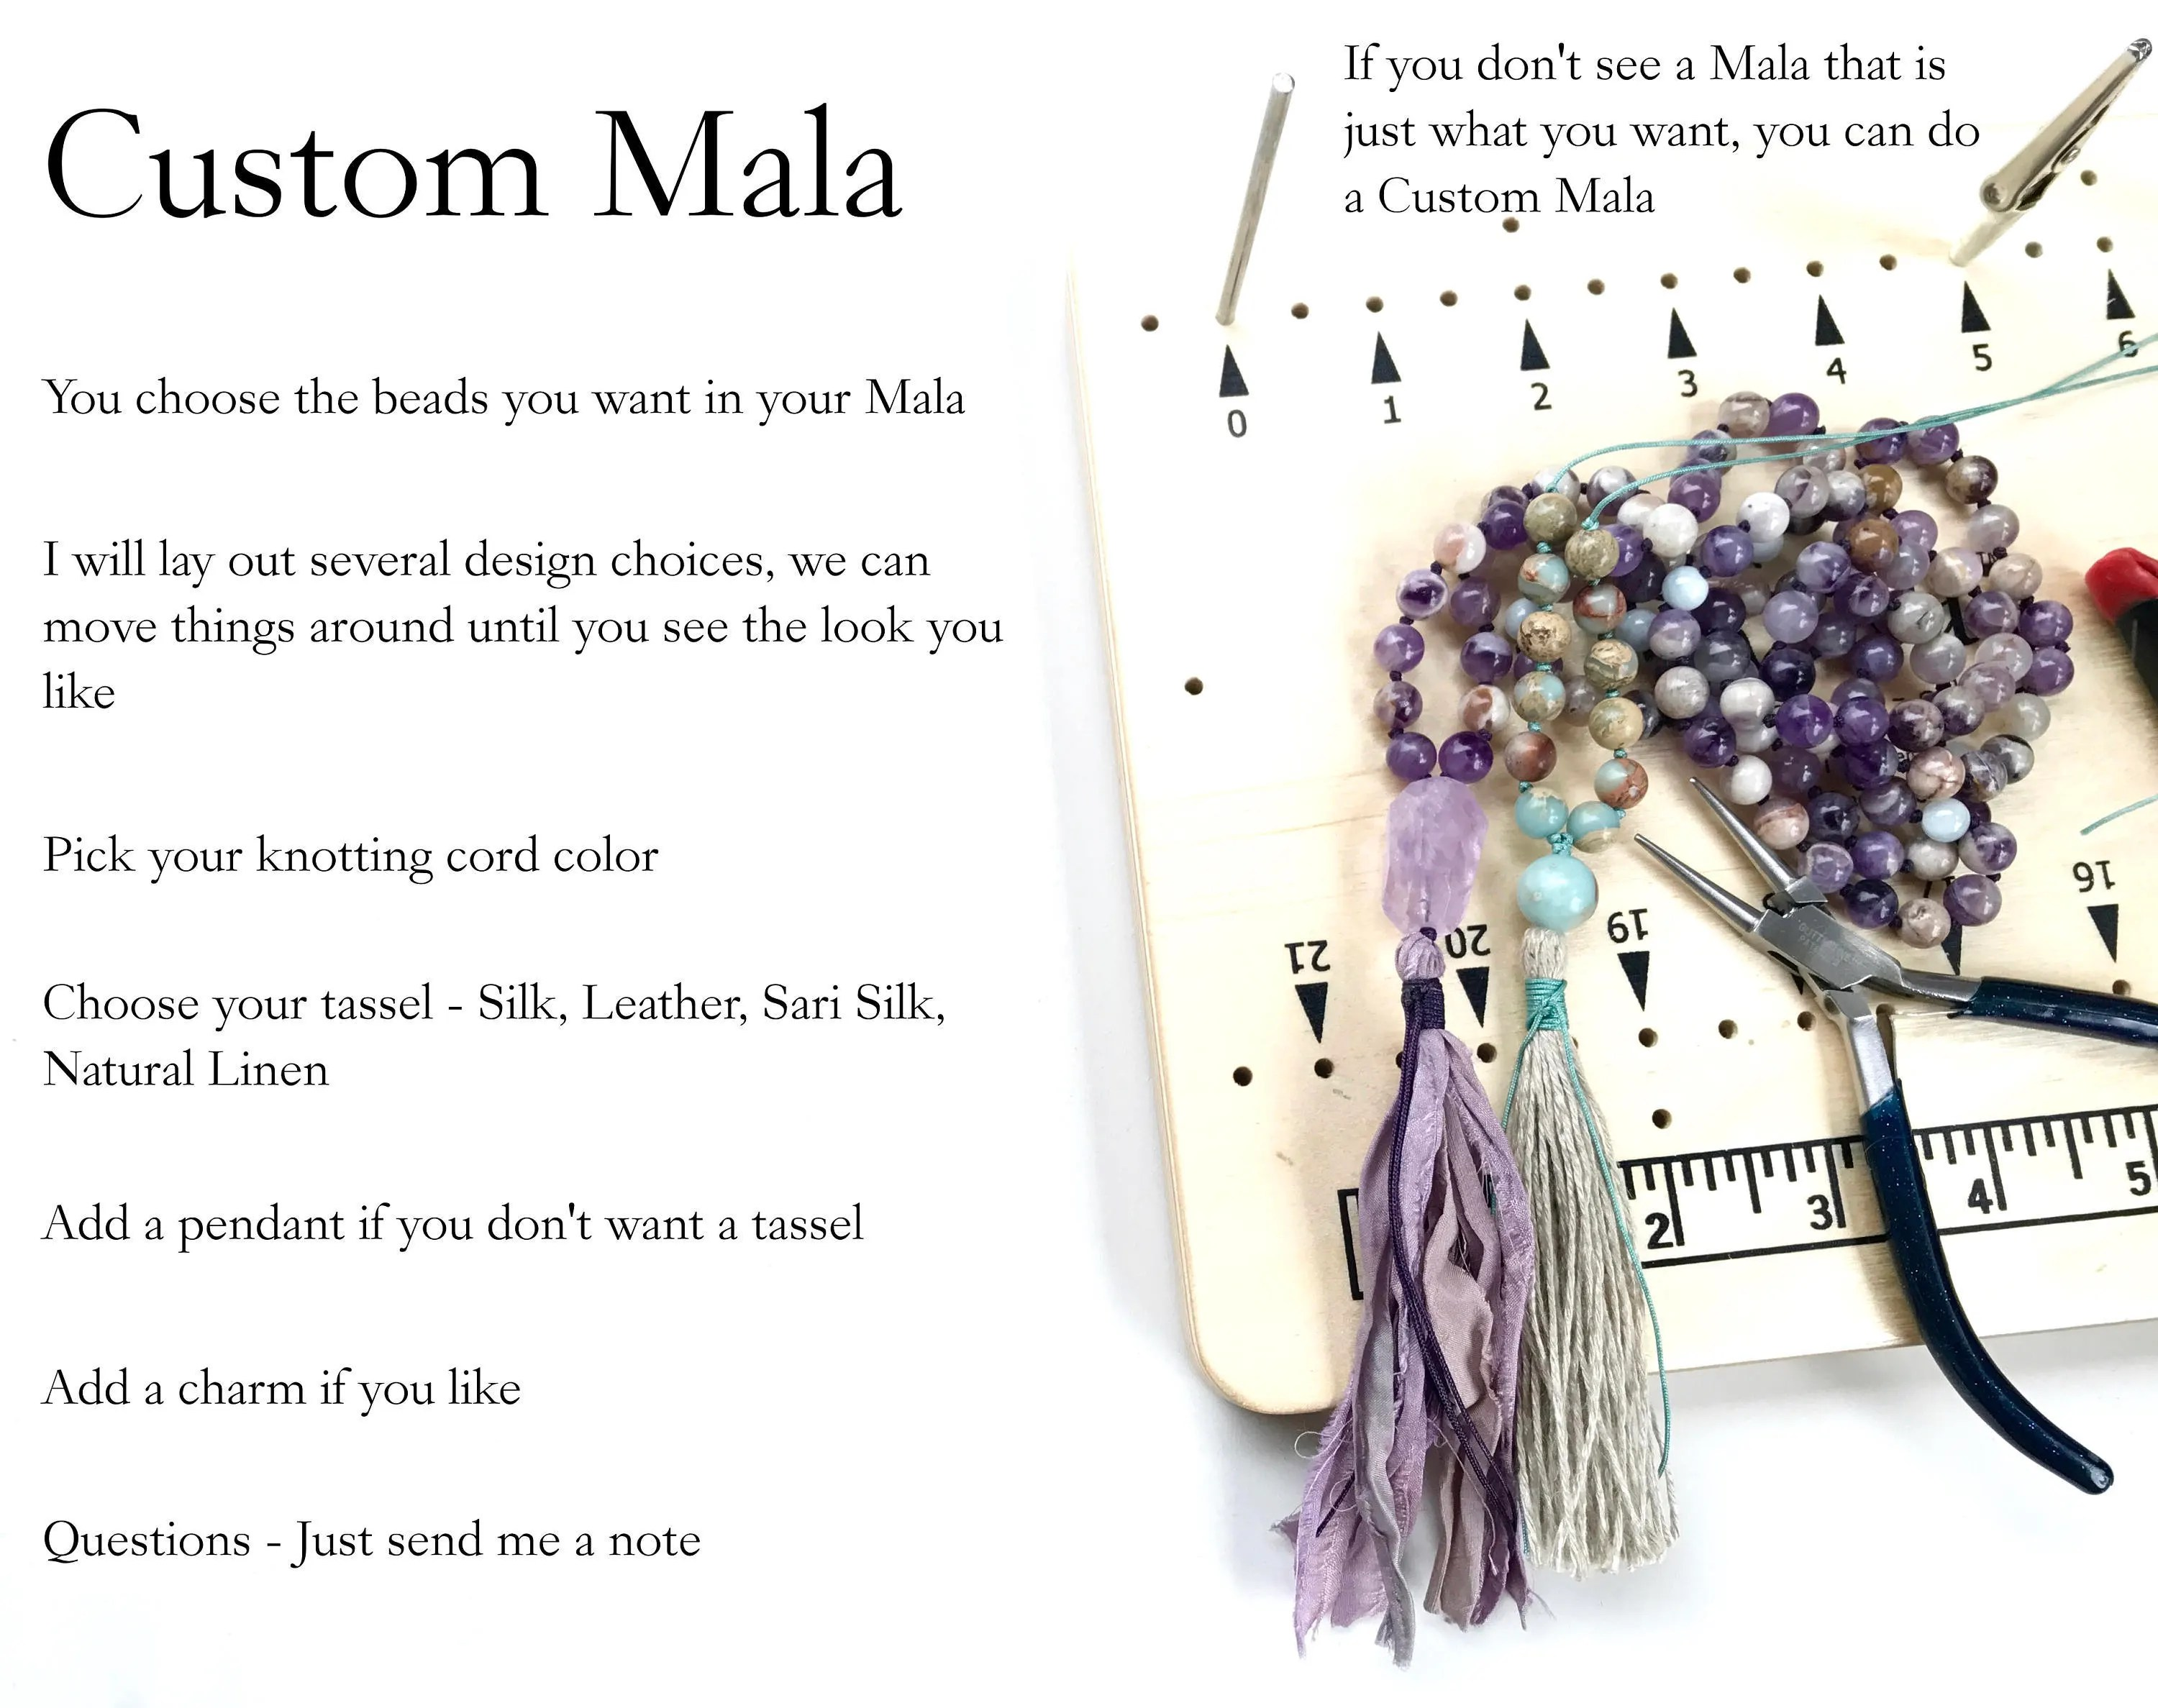 Mala Design Custom Mala Beads Design Your Own Mala Necklace Have A